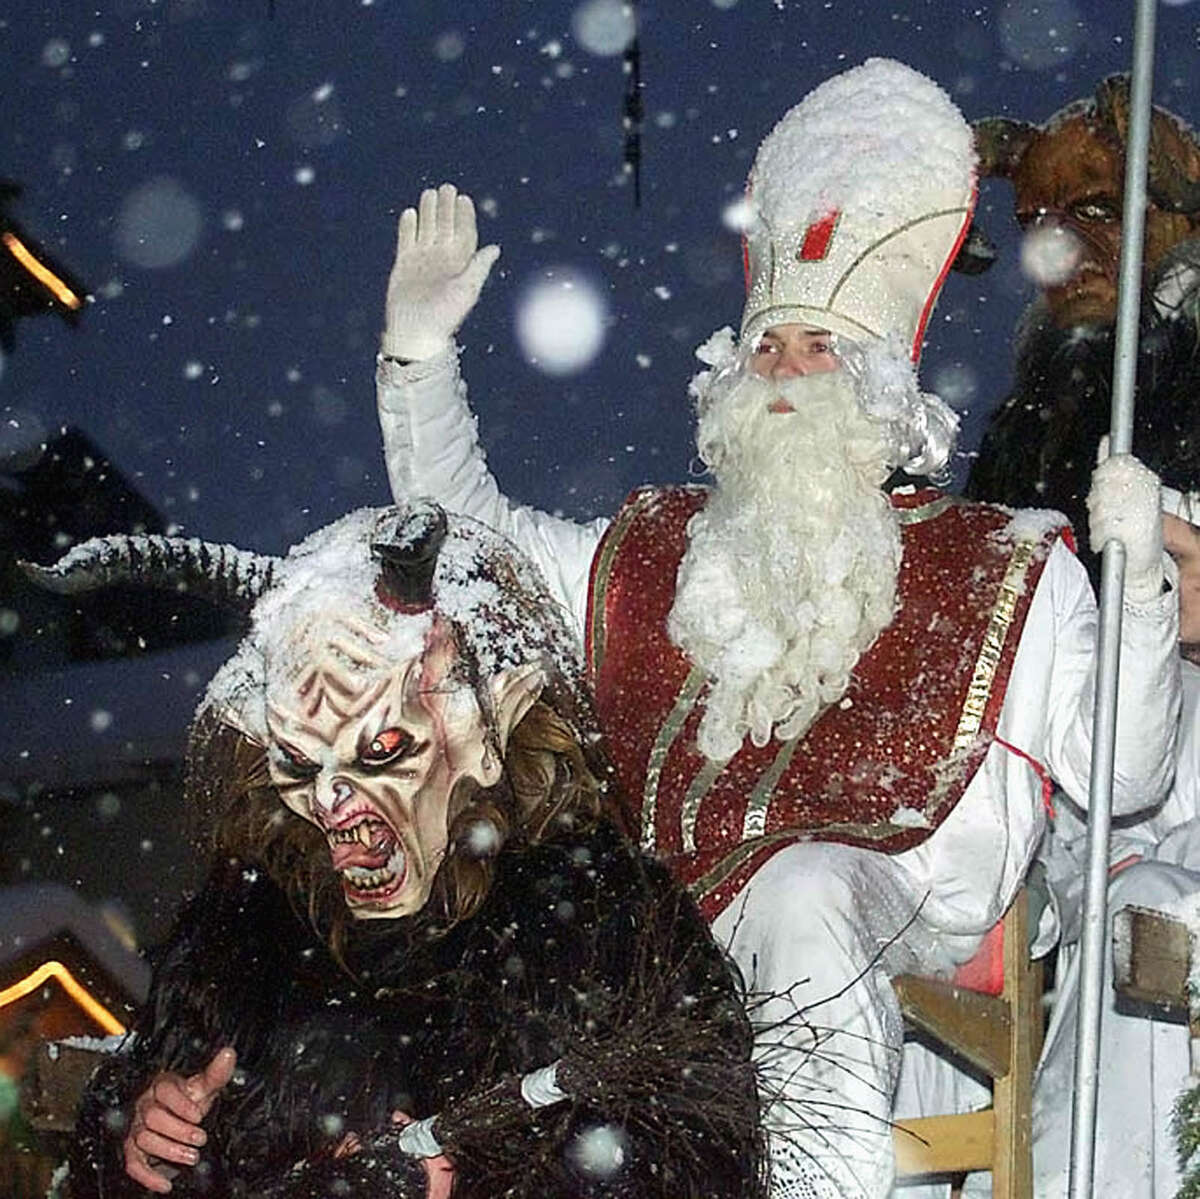 Buds In much of Northern Europe, St. Nicholas dresses in white bishop's robes and gives presents to good children on his feast day, December 6. The bad children are dealt with by his demon-like opposite, known as Krampus in Austria, Knecht Ruprecht in Germany, Belsnickel in southwest Germany, Klaubauf in Bavaria and Pere Fouettard in northern France.